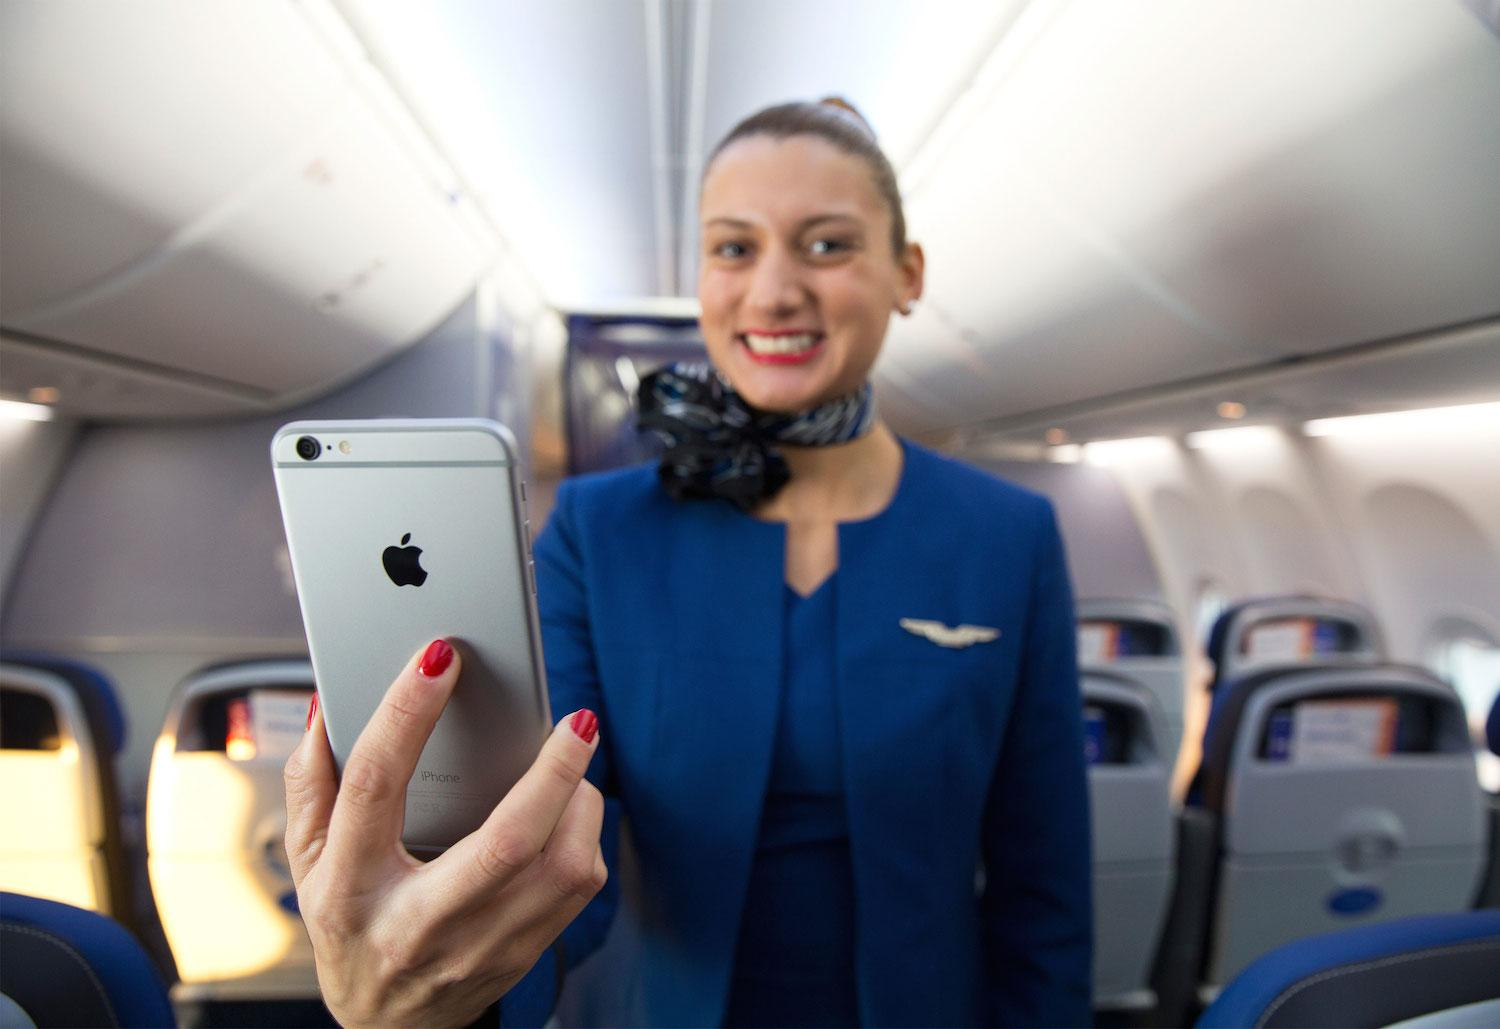 united airlines flight attendants get iphone 6 plus handsets united airlines iphone plus flight attendants